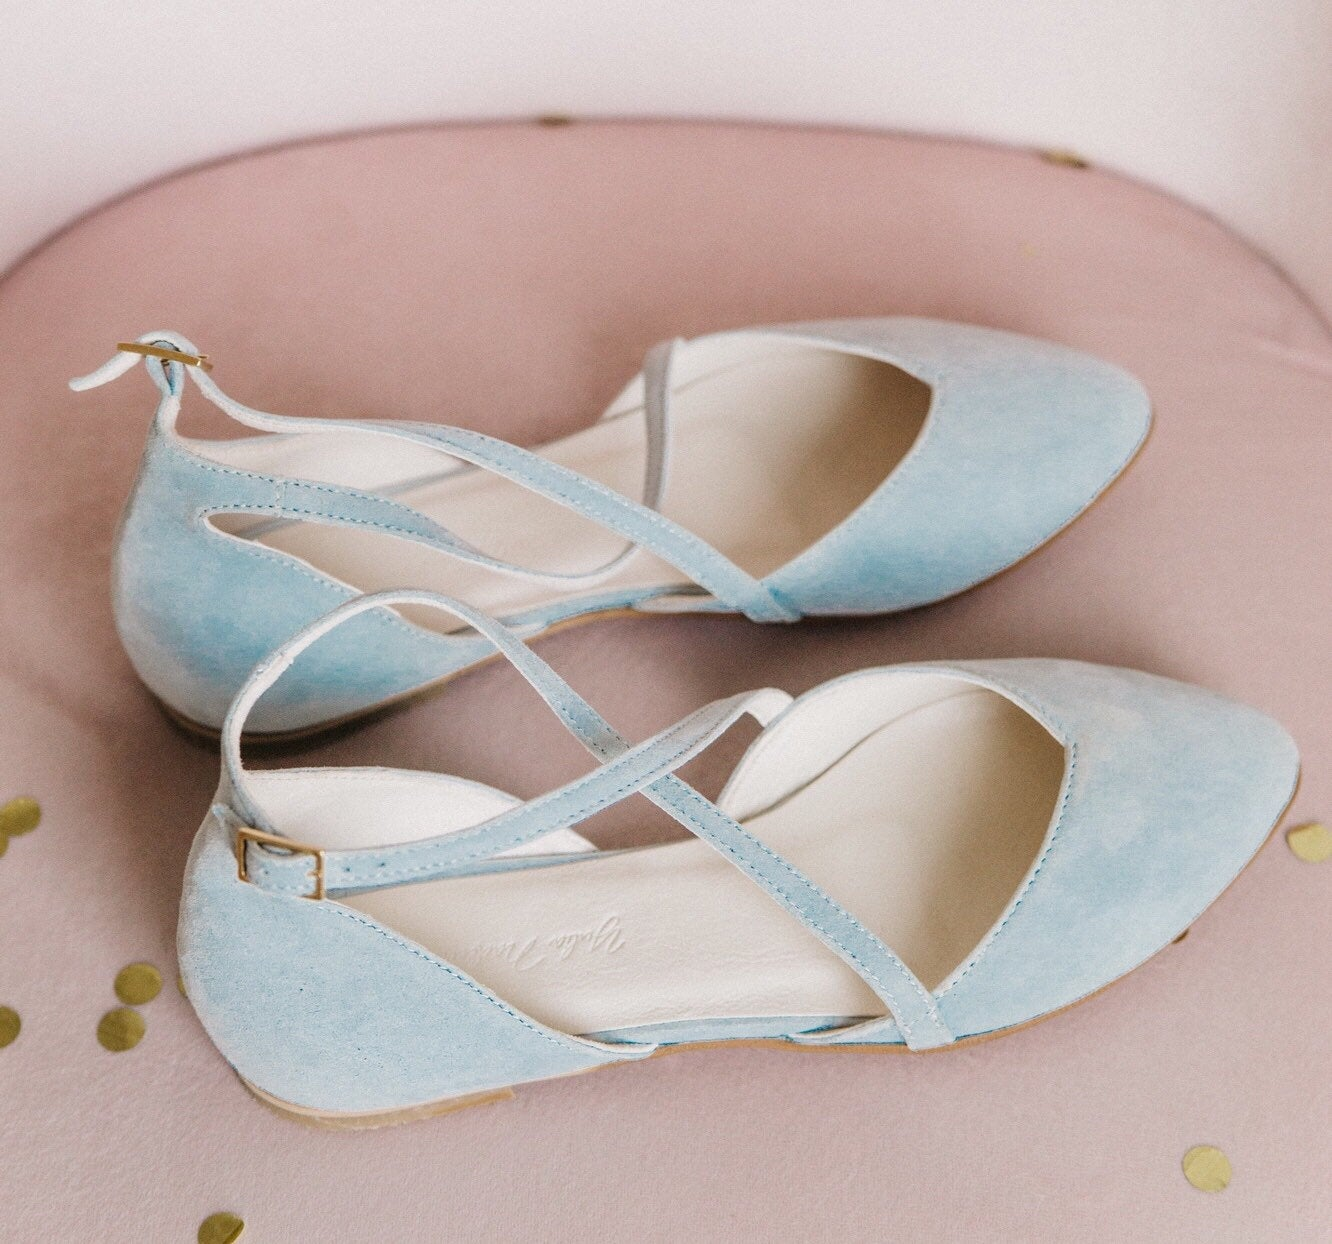 20 Flat Wedding Shoes (That Are Just as